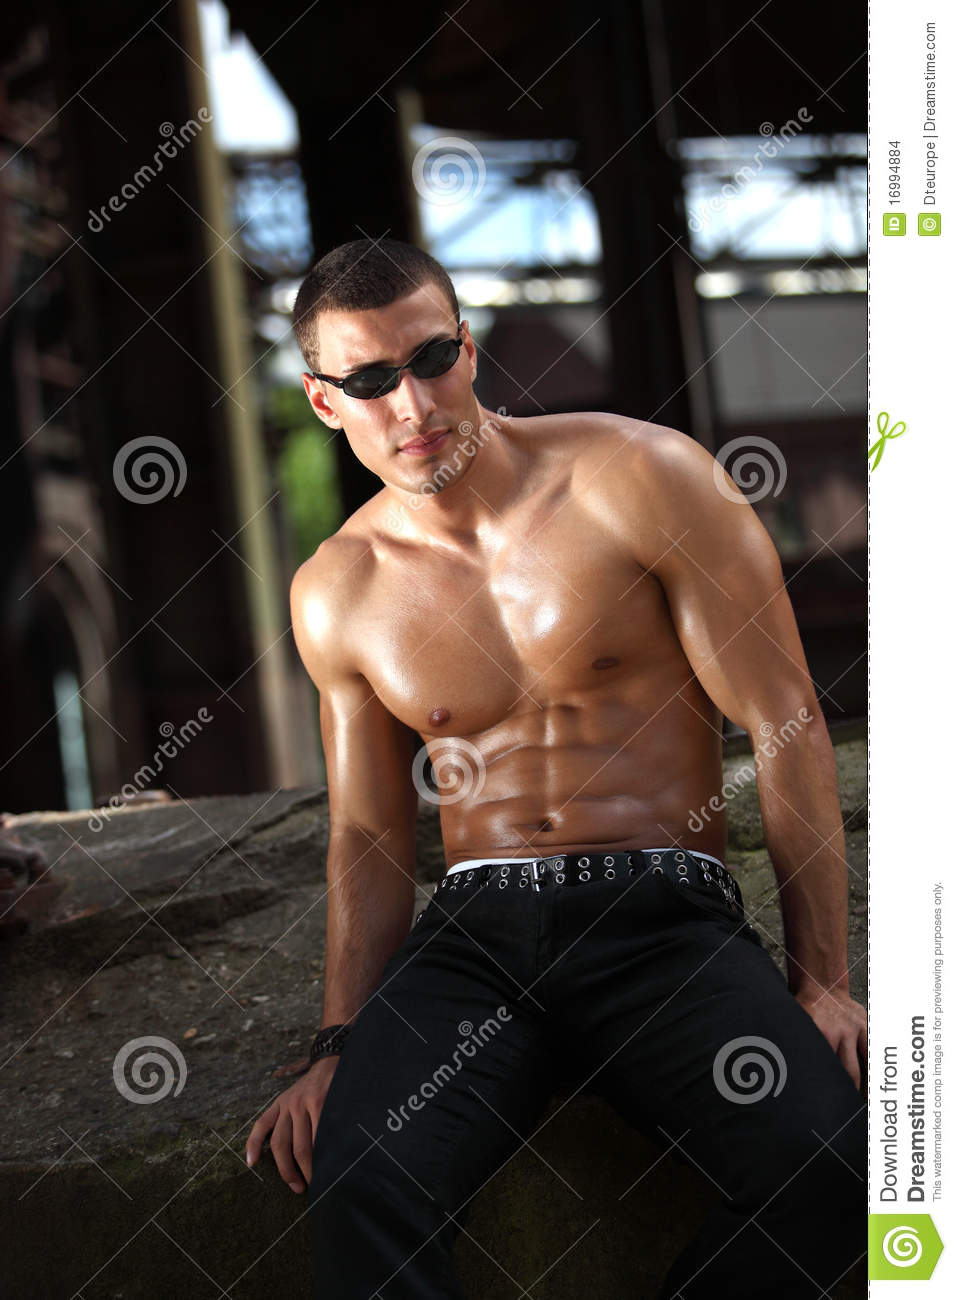 Relaxed Bodybuilder Stock Images - Image: 16994884